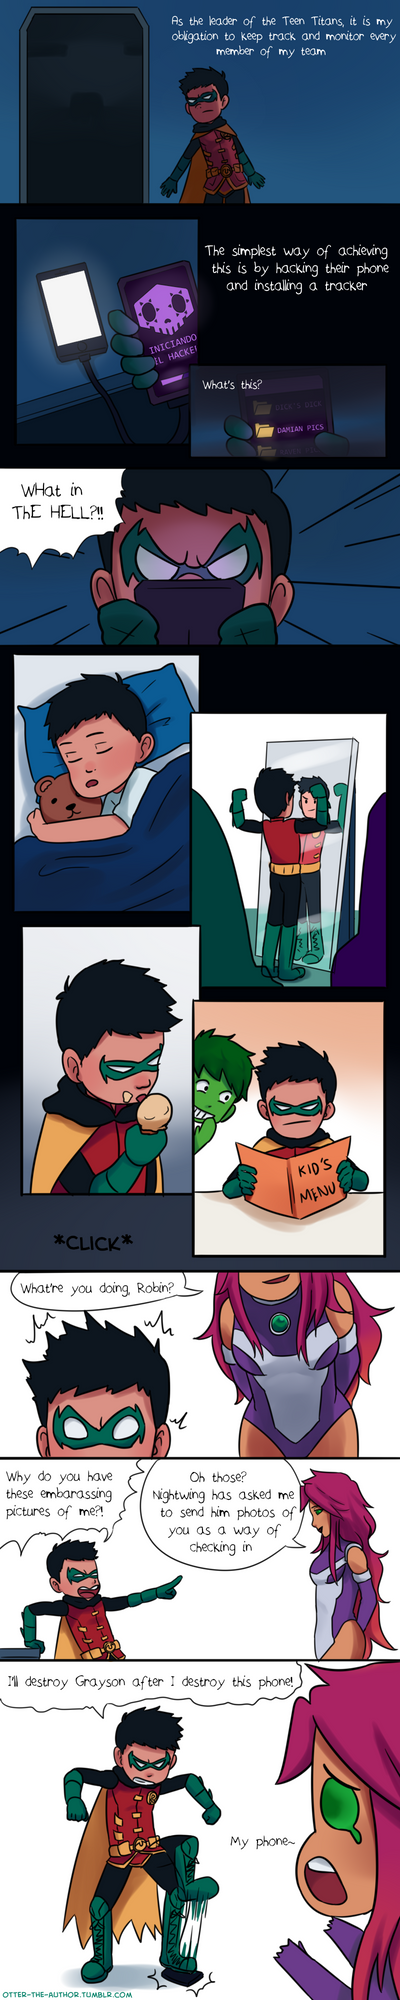 Damian the 1337 H4XX0R by OtterTheAuthor